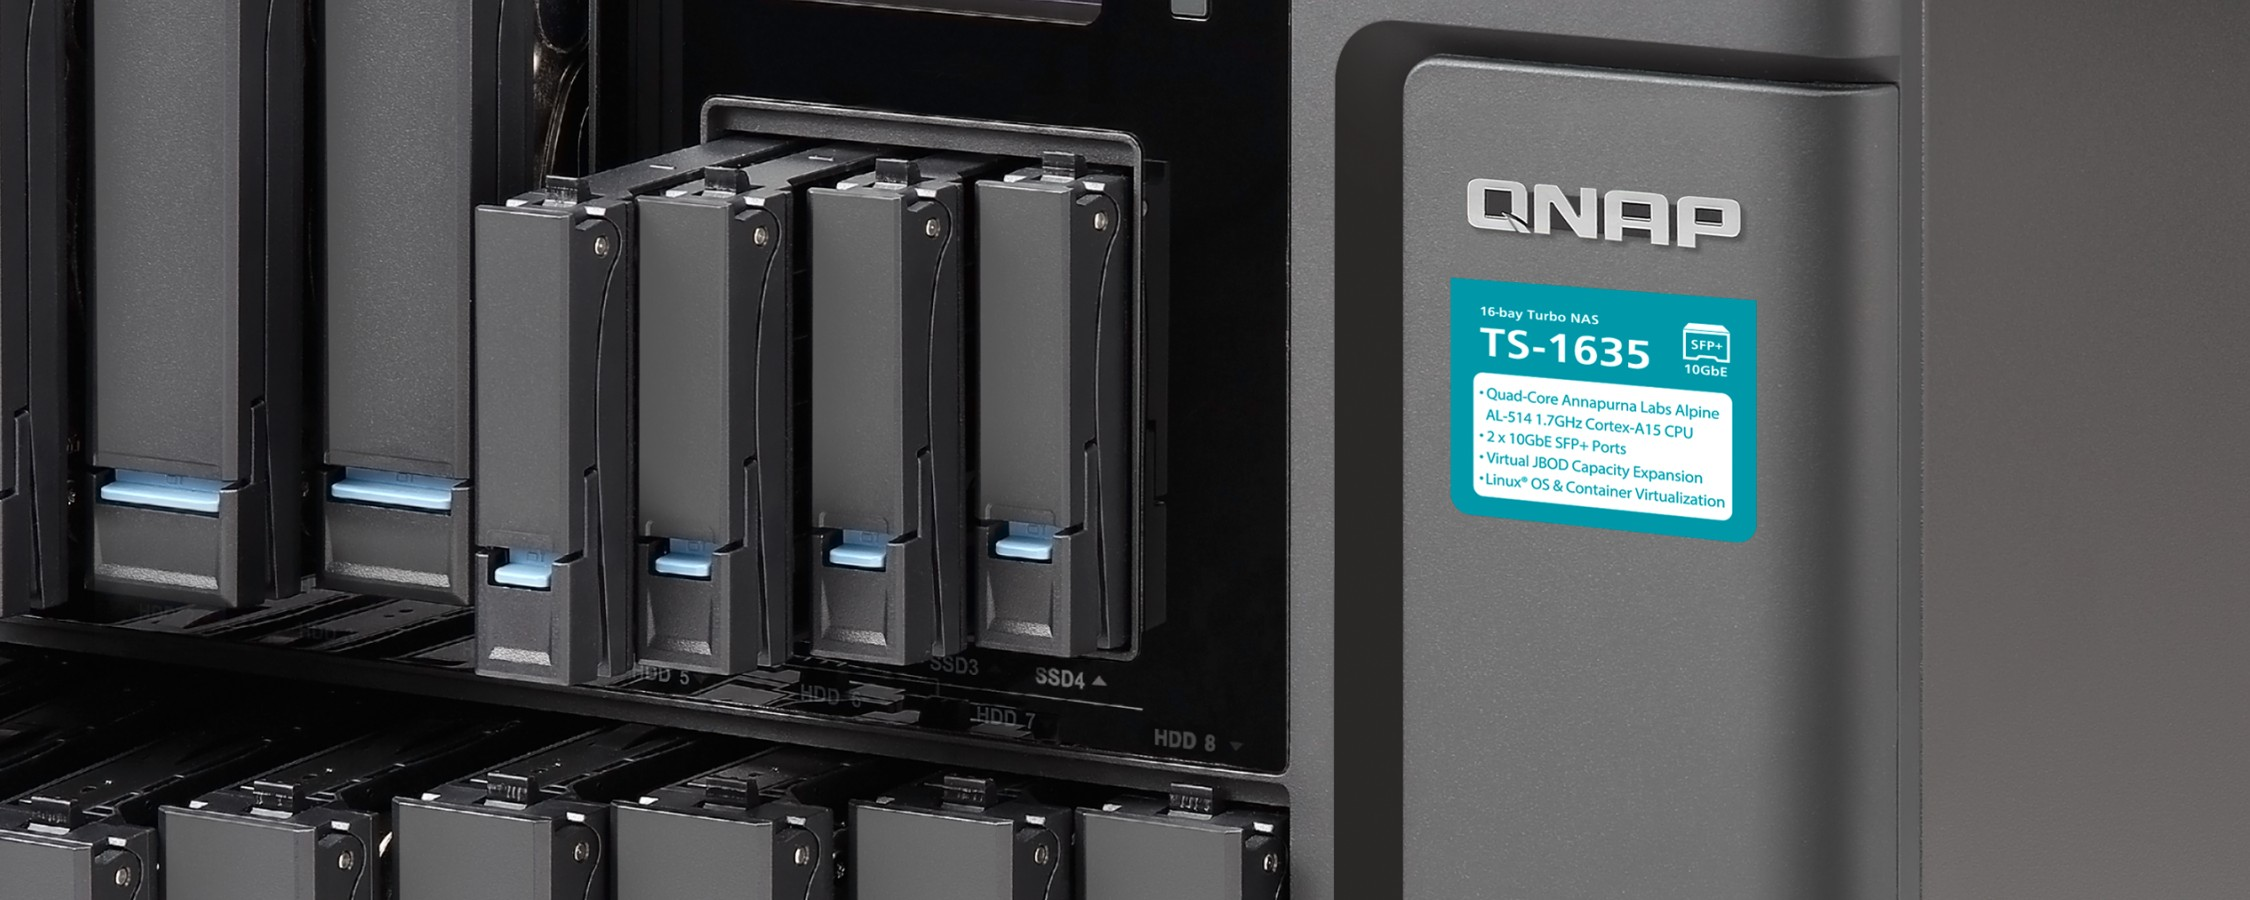 QNAP TS-1635 Review > Benchmarks - TechSpot